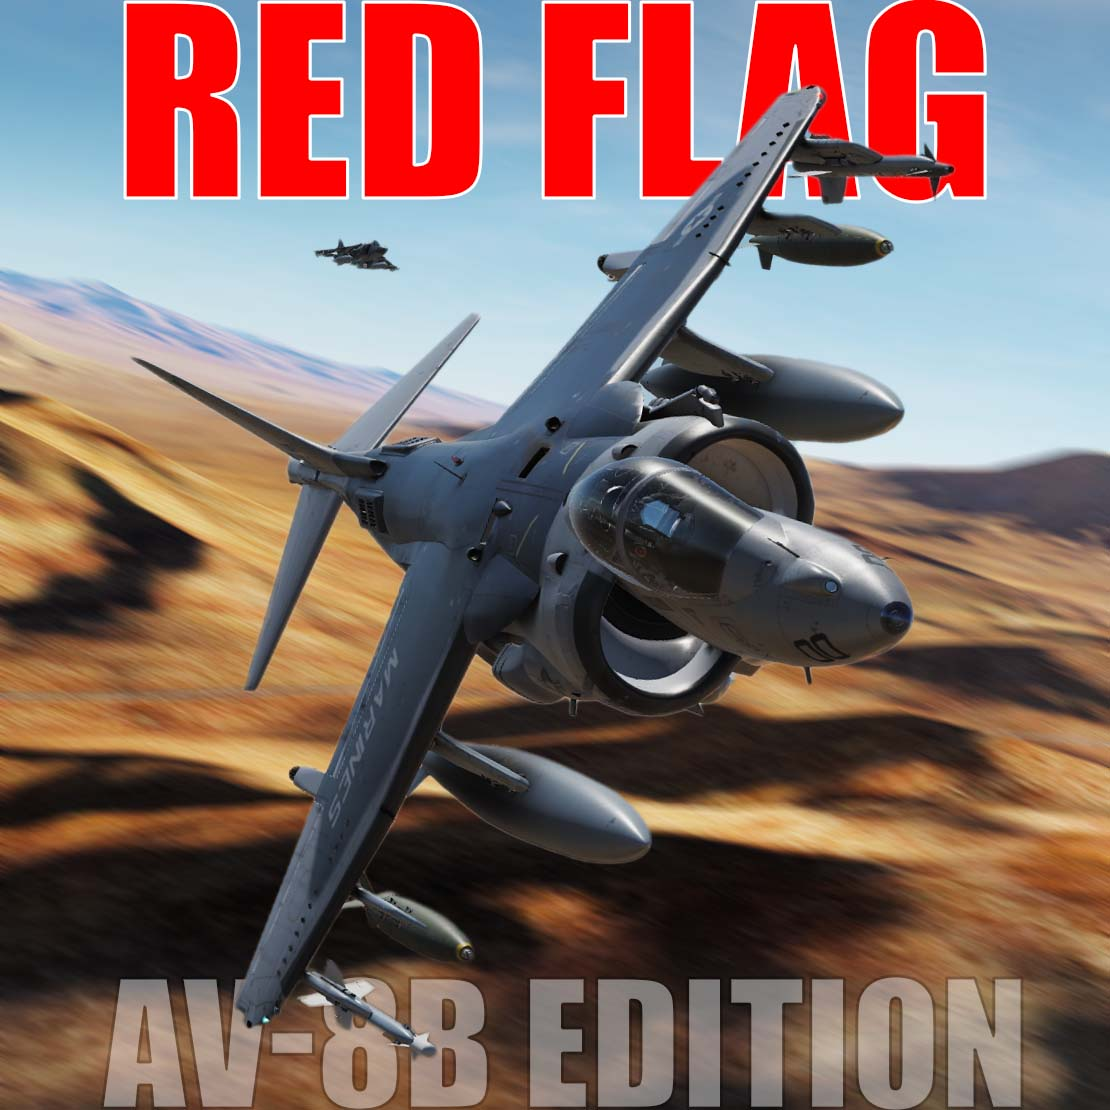 RED FLAG - Harrier Mission 1 (ver 1.56 updated July 31, 2019)